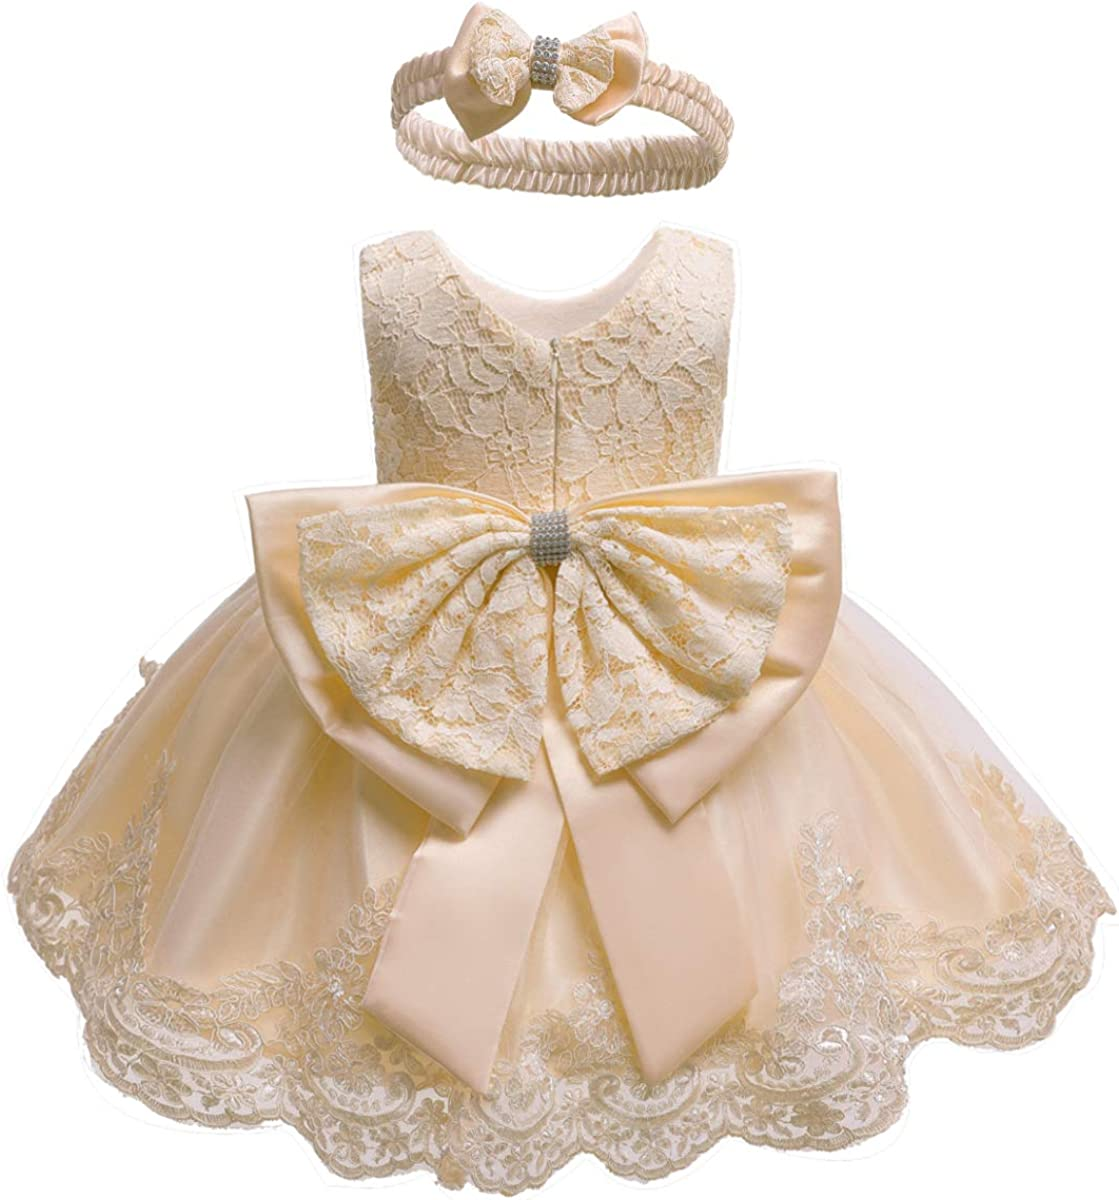 0-6T Baby Girls Big At the price of surprise Max 51% OFF Bowknot Dresses Lac Toddler Prom Formal Tutu